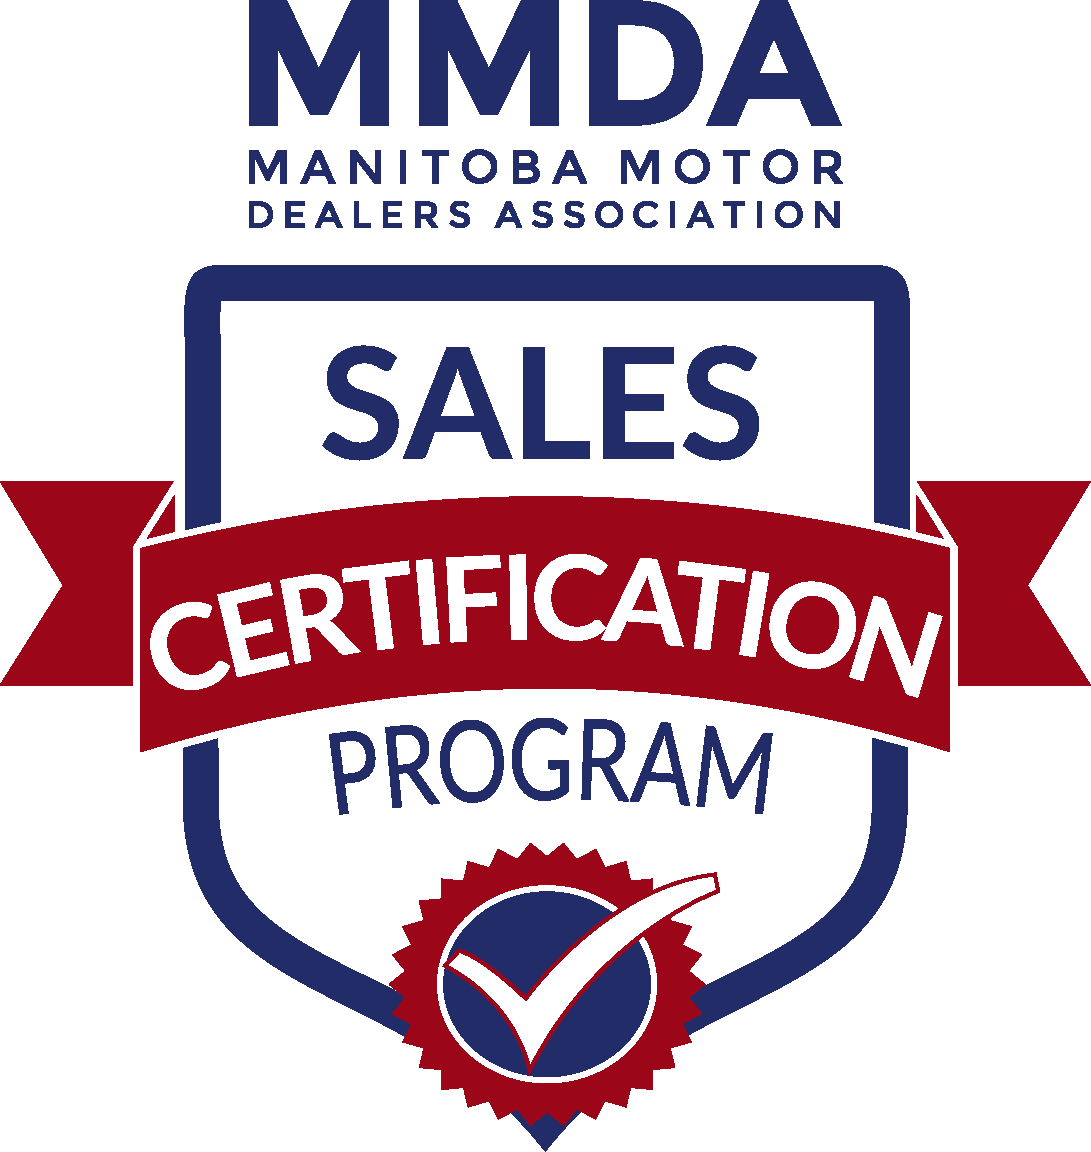 Sales Certification Program